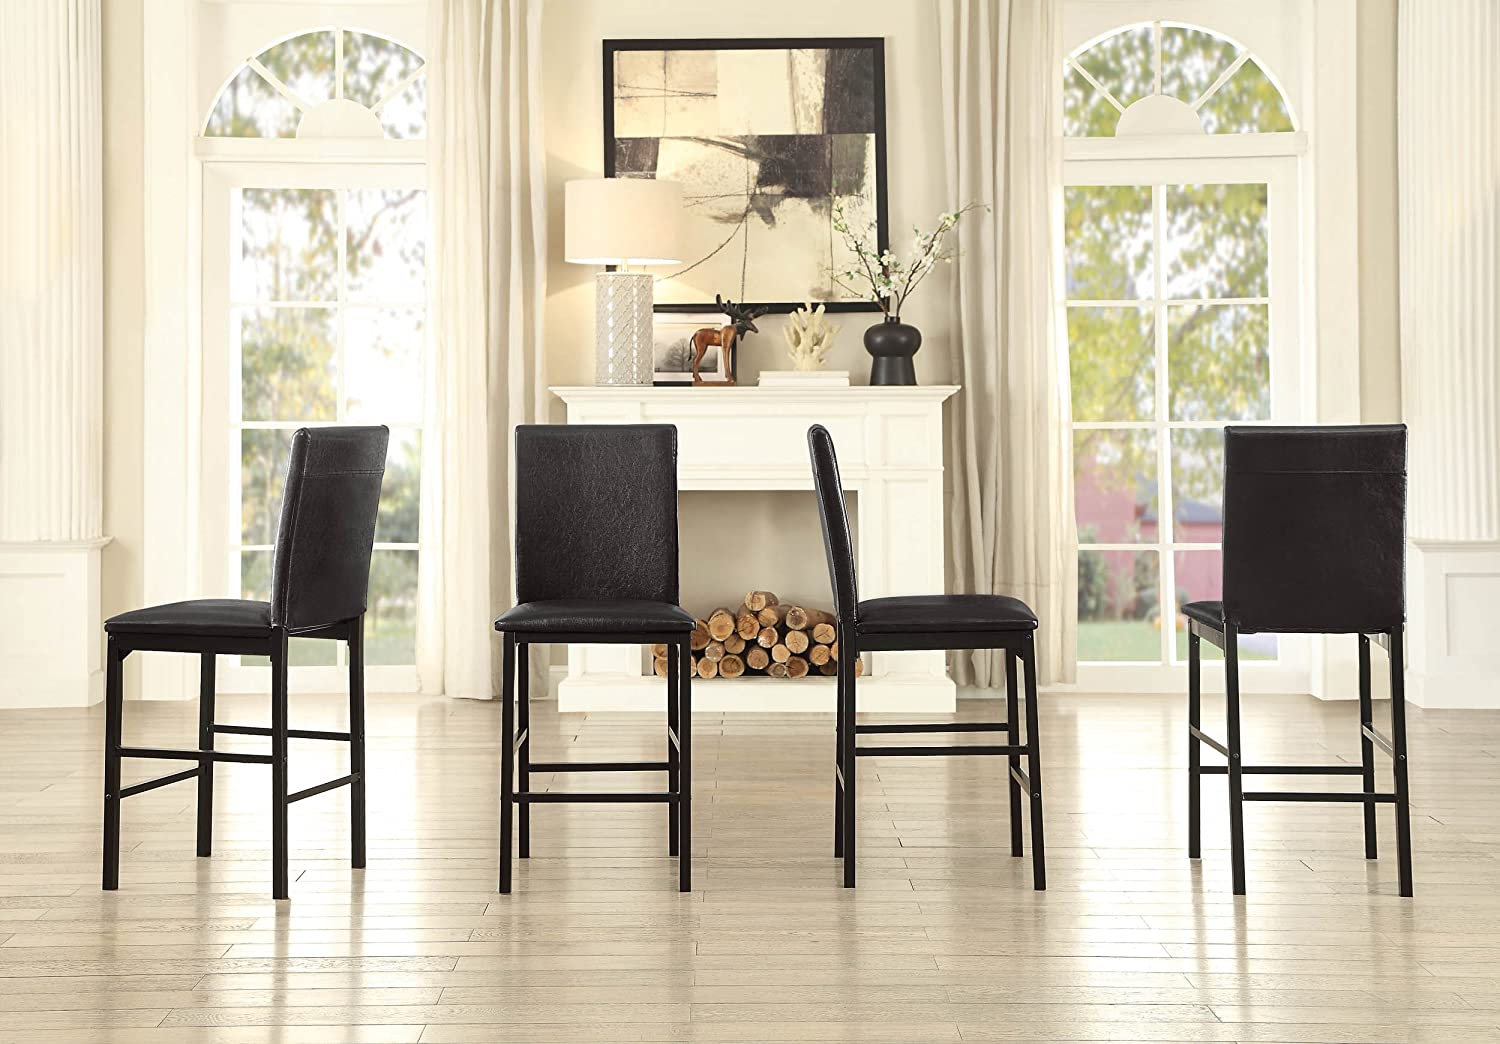 Homelegance 2601 Counter Height Dining Chair Set of 4 , Black